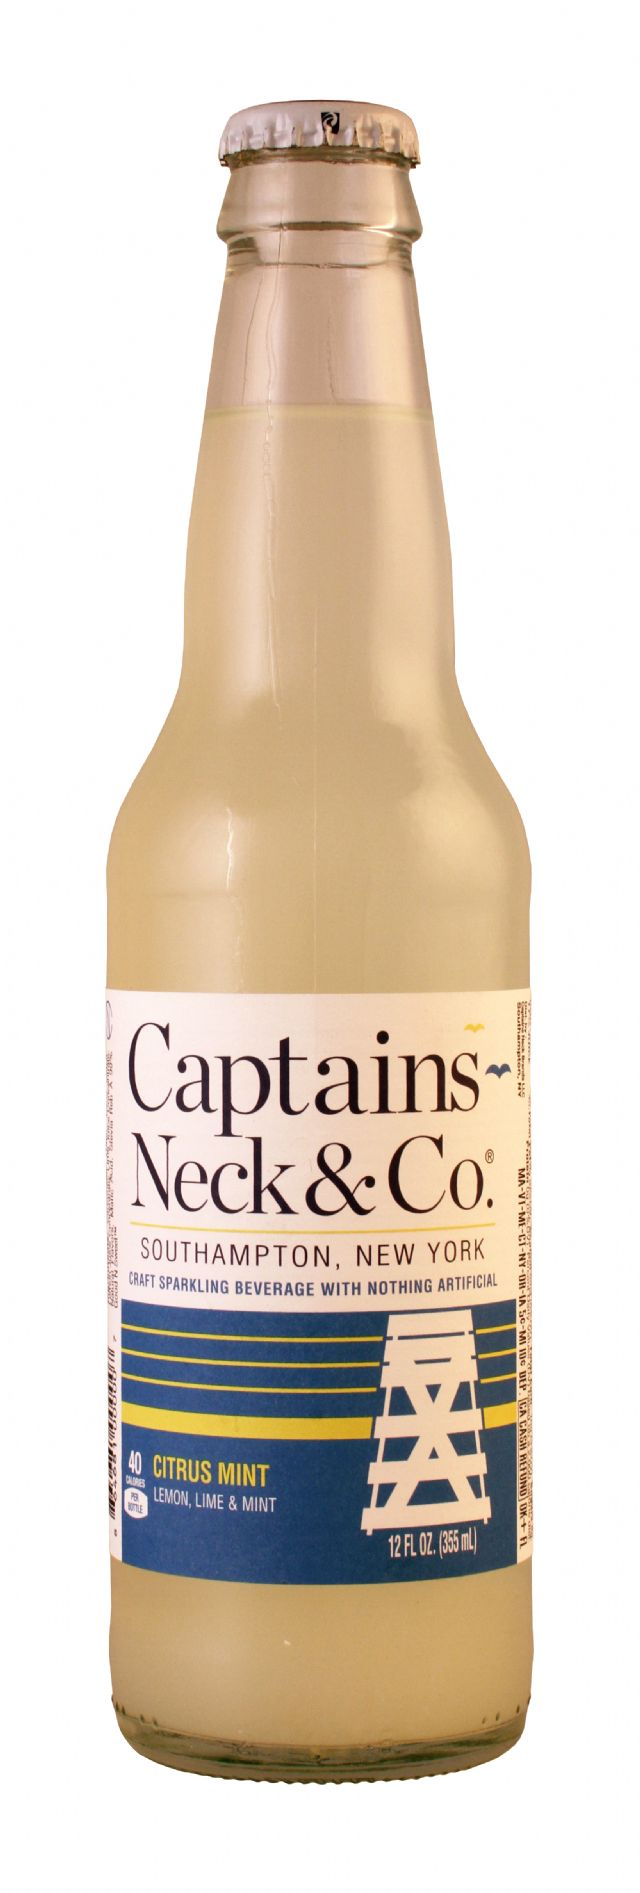 Captains Neck and Co.: CaptainsNeck CitrusMint